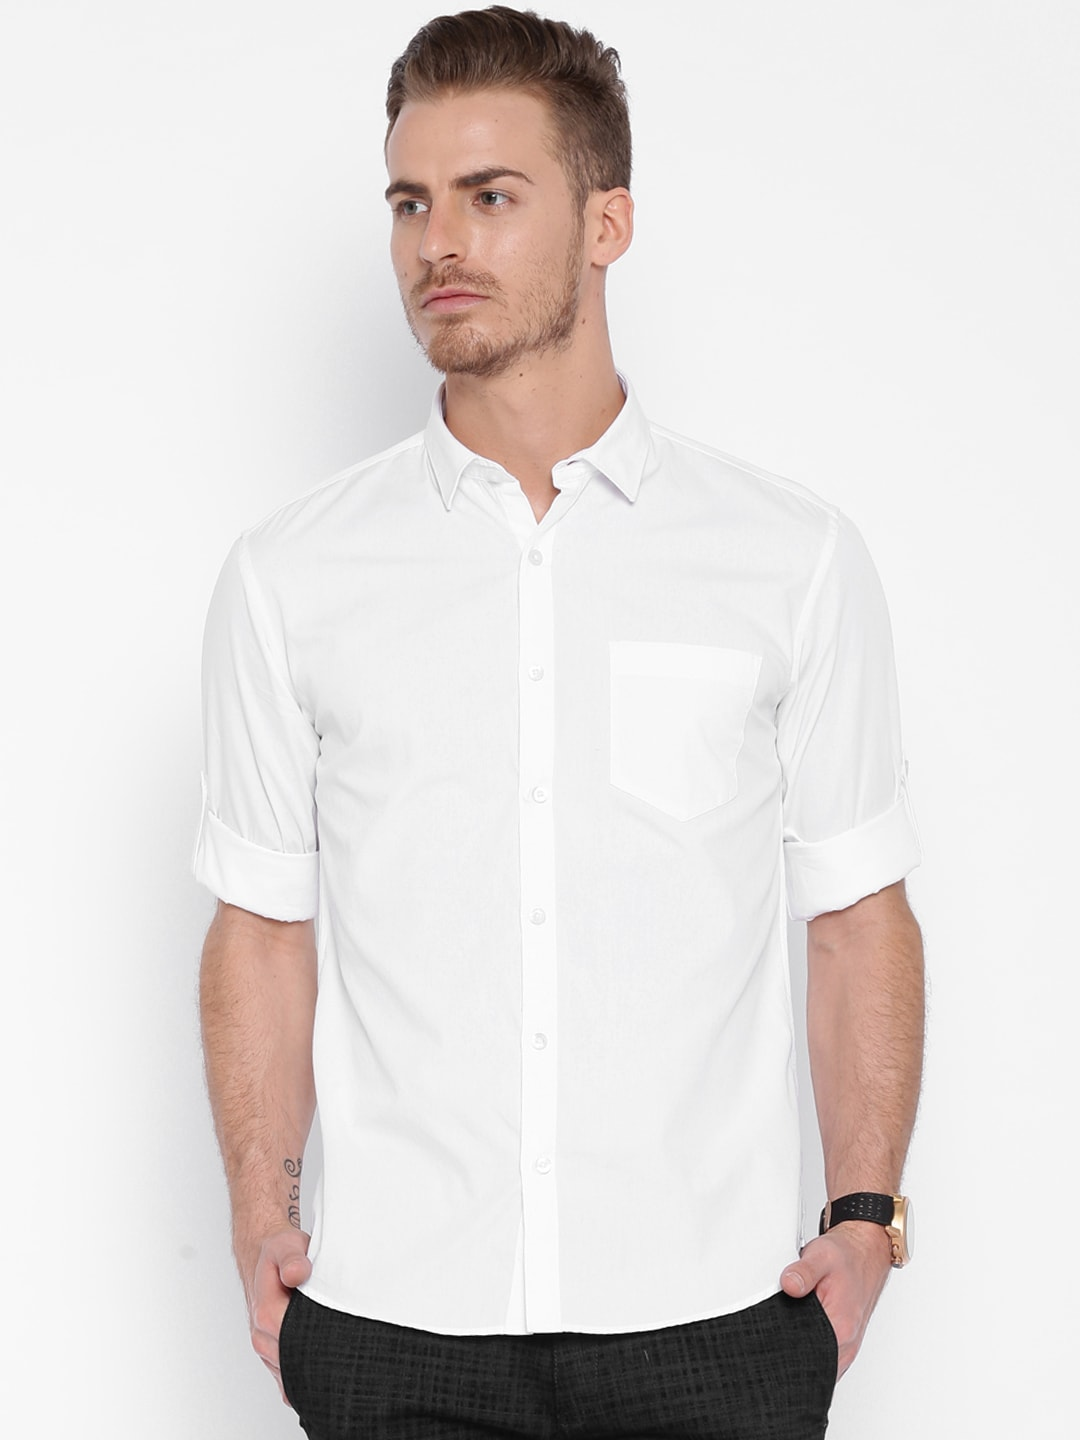 White Shirt - Buy White Shirt online in India